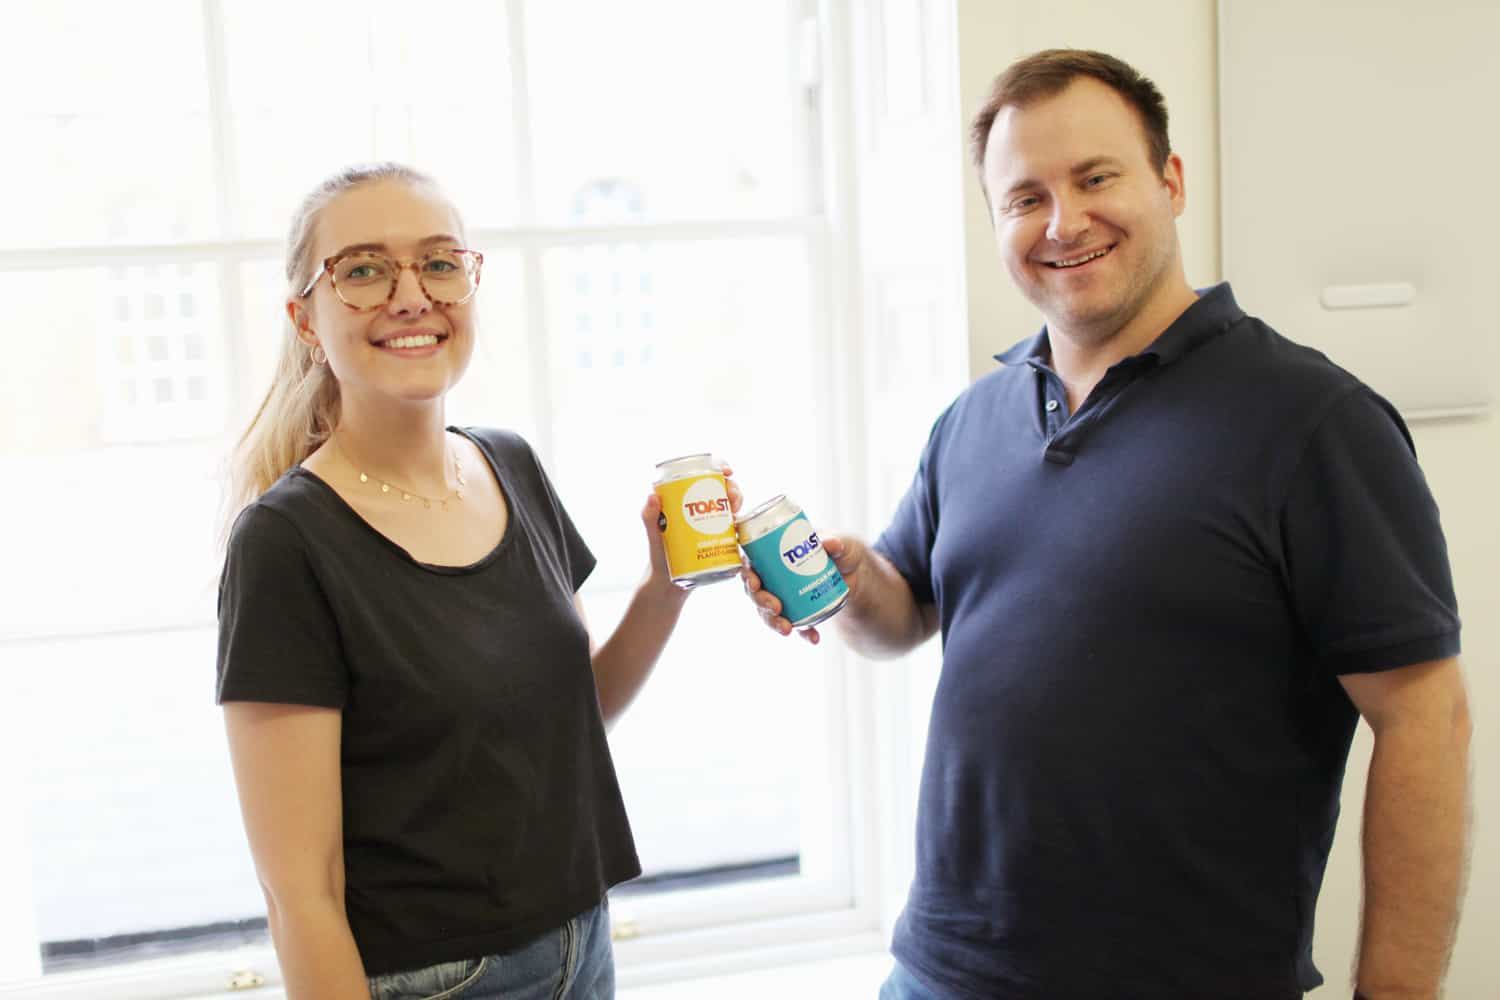 image of tyron and caoilainn from wholegrain holding toast ale